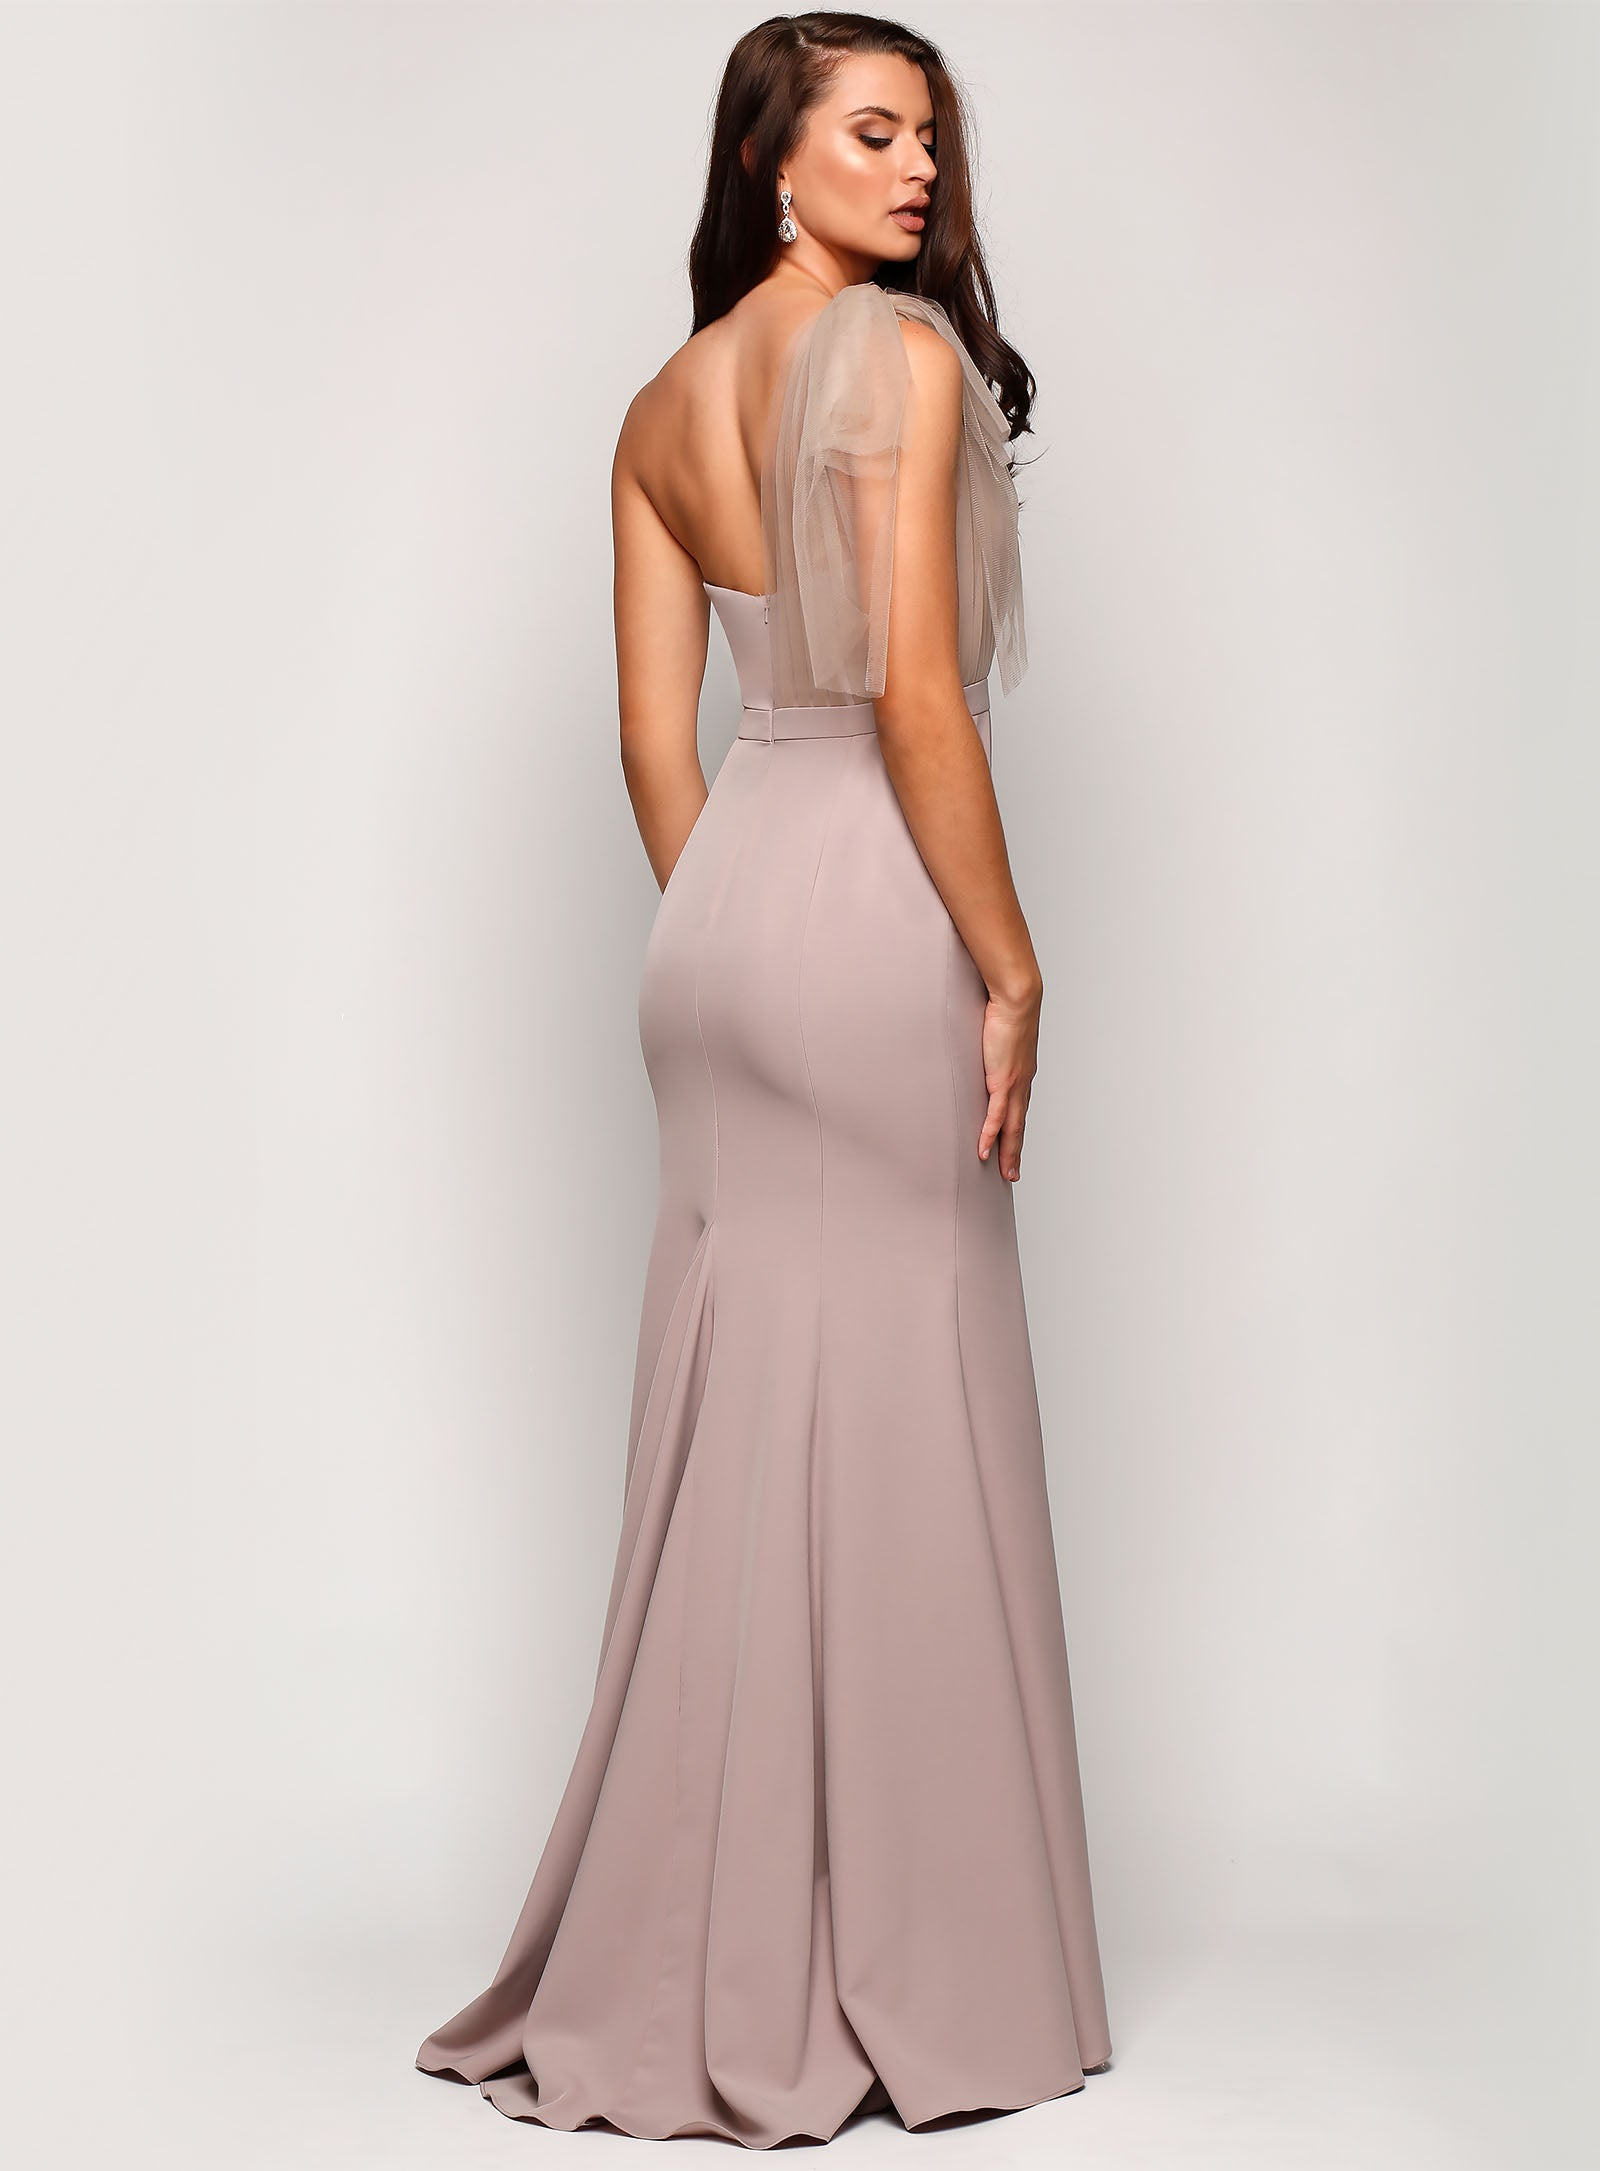 Marissa One Shoulder Tulle Dress